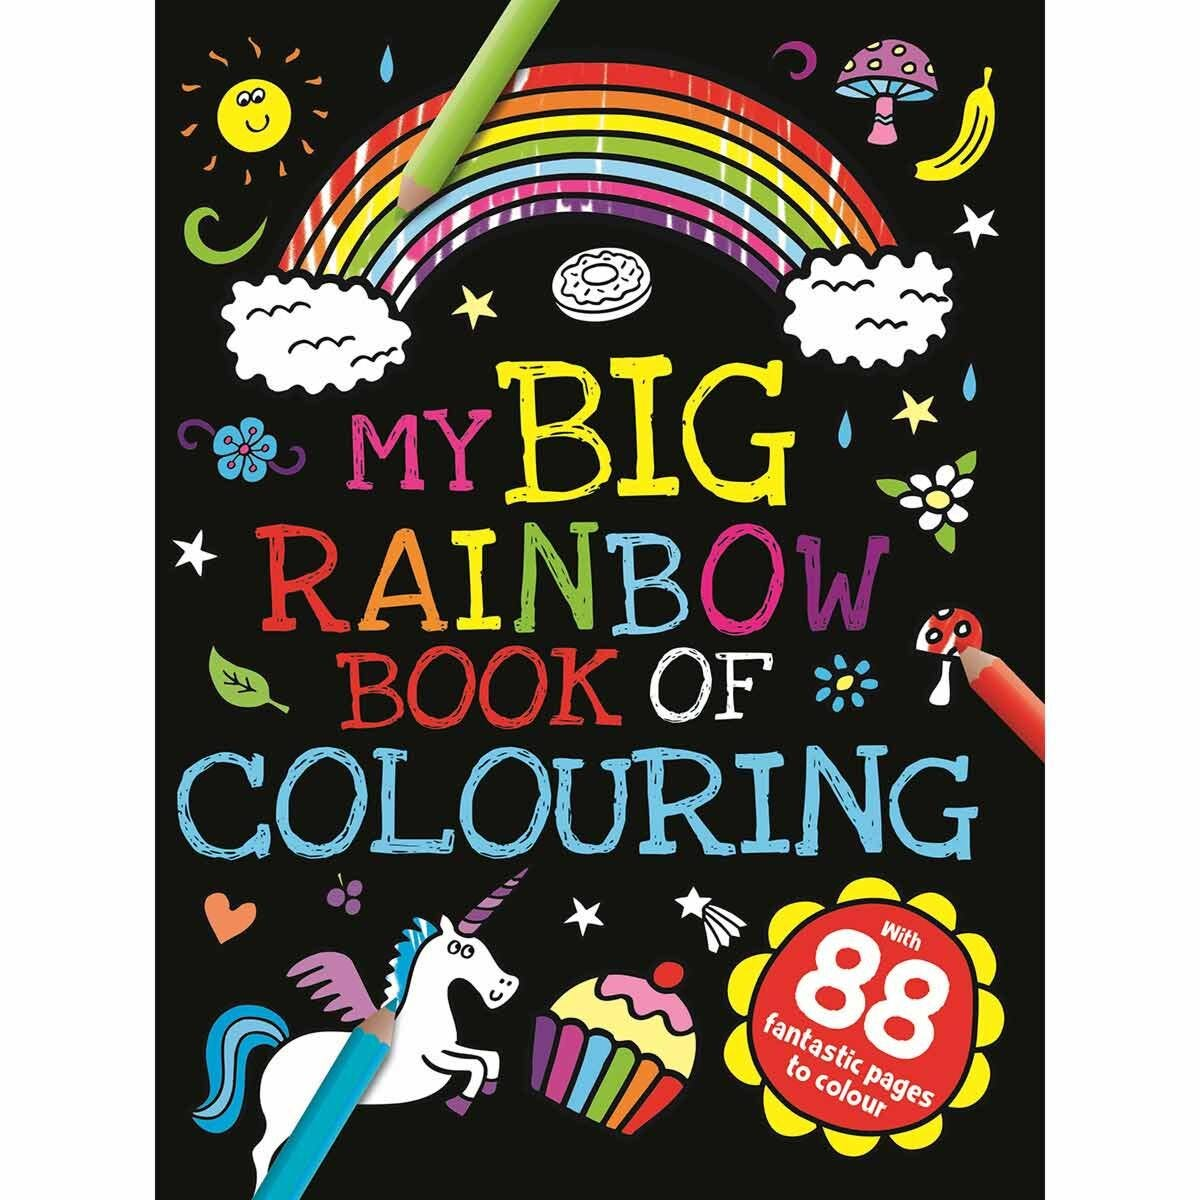 My Big Rainbow Colouring Book